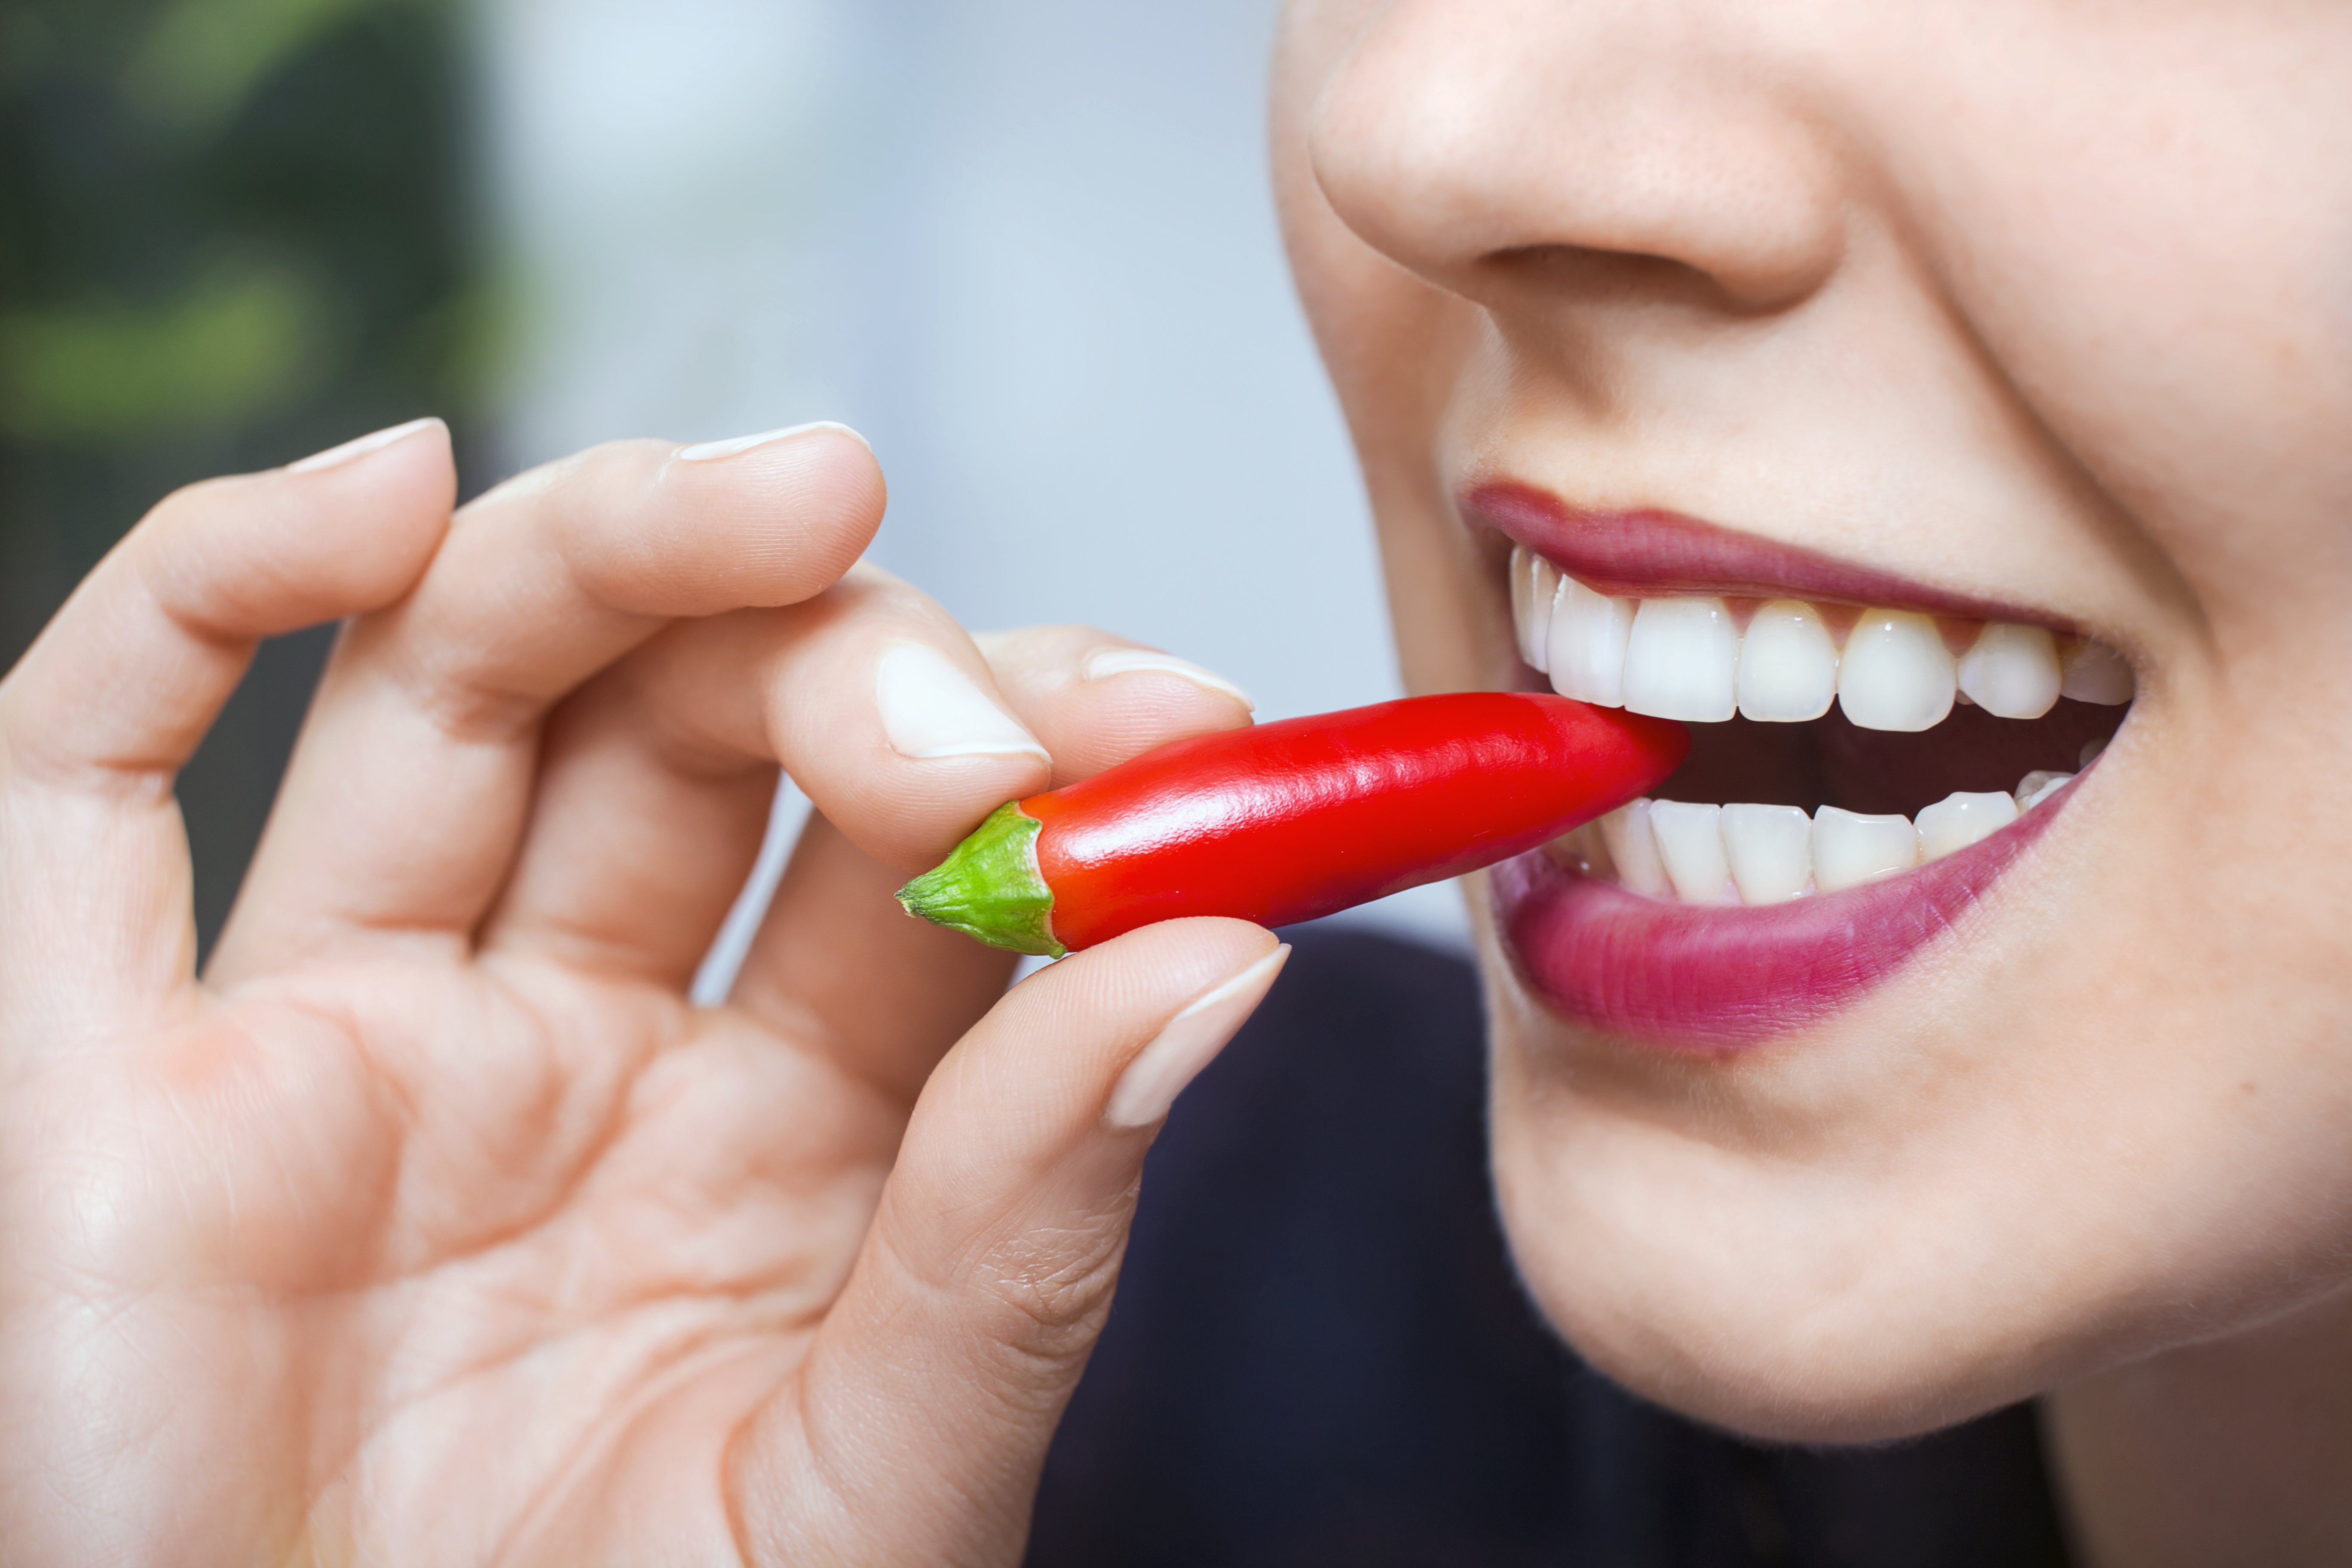 Eating spicy food to lose weight